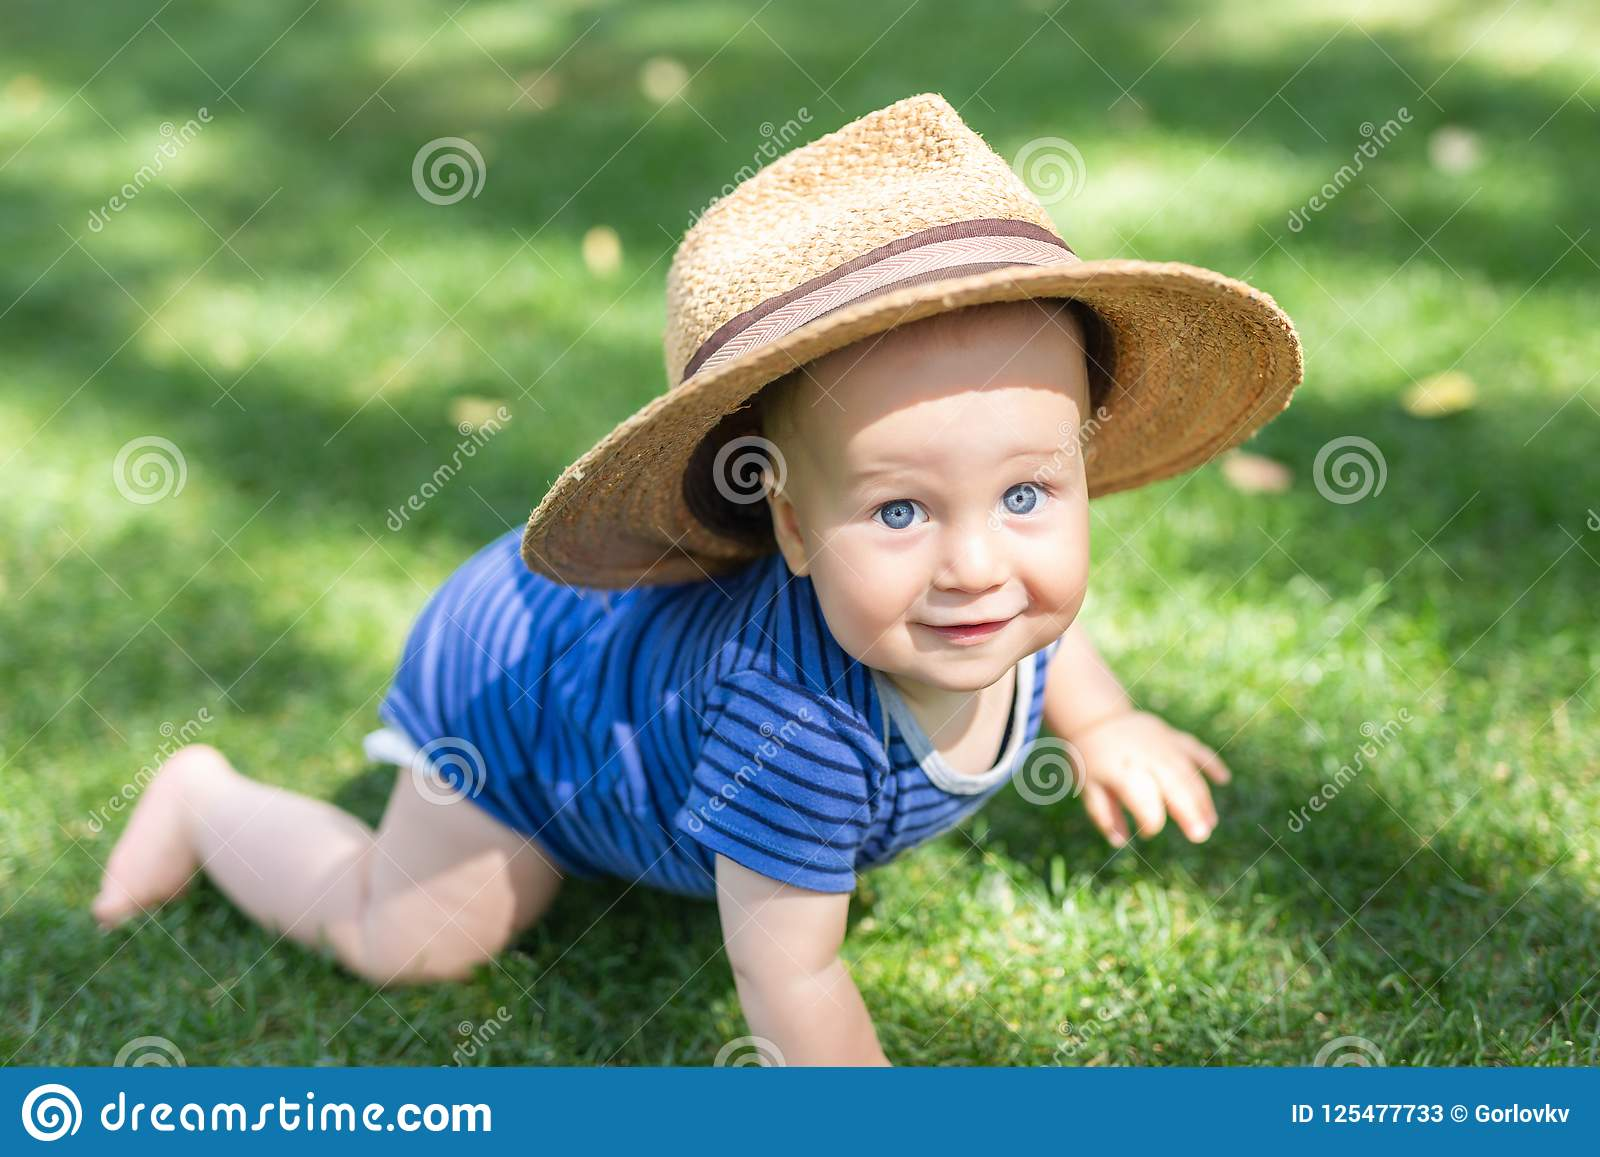 Portrait cute funny little boy in big straw hat having fun on green grass lawn at park. Sweet little baby crawling and smiling at